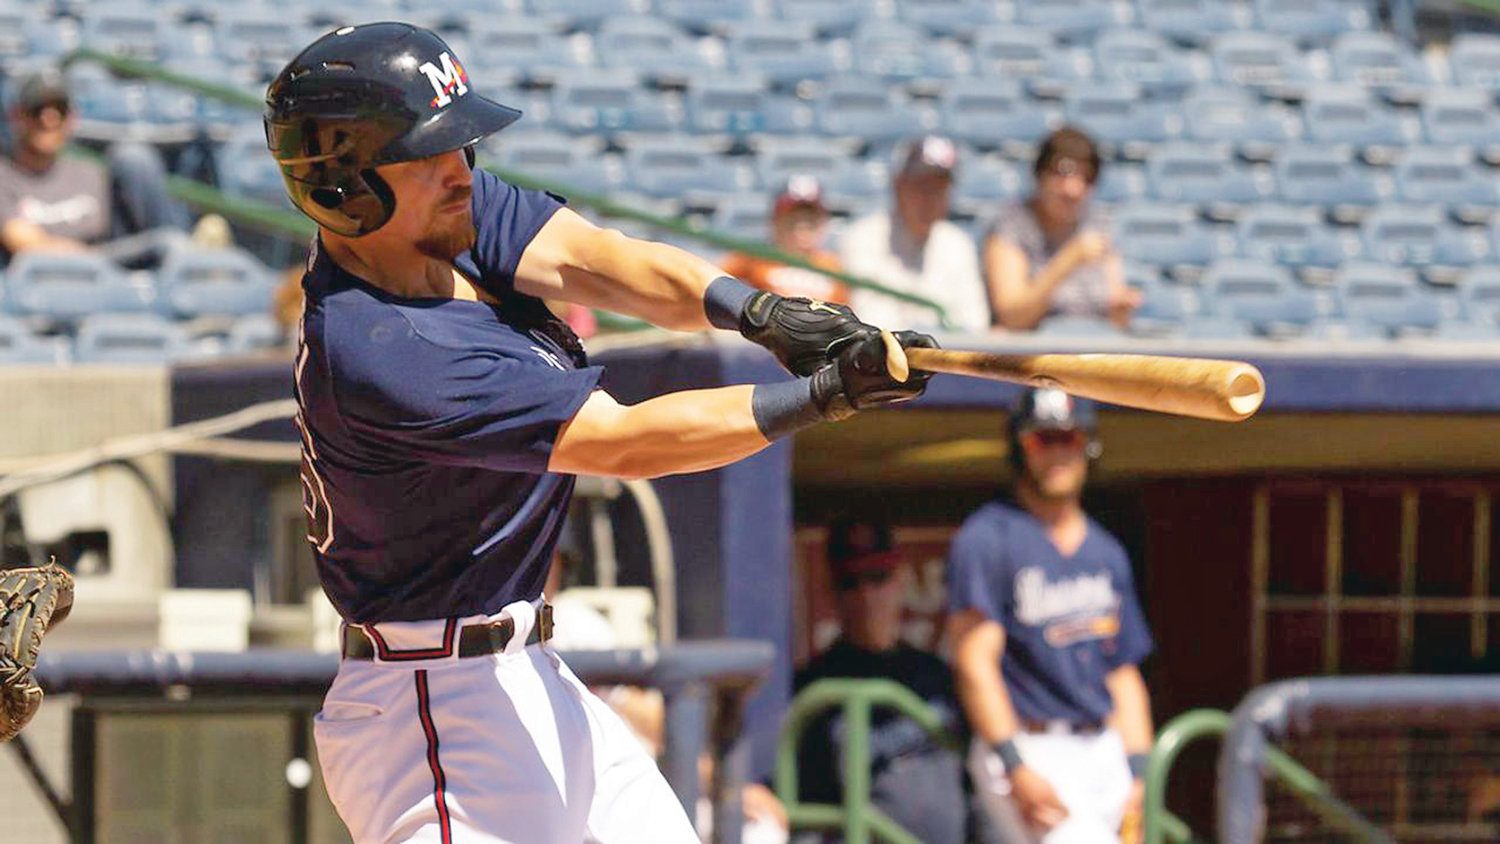 LOCAL PRO Ryan Casteel belted his seventh HR of the season for the Mississippi Braves, plus ripped a single for four RBIs in the first four innings of a rain-suspended game over the weekend against his former team, the Jackson Generals.